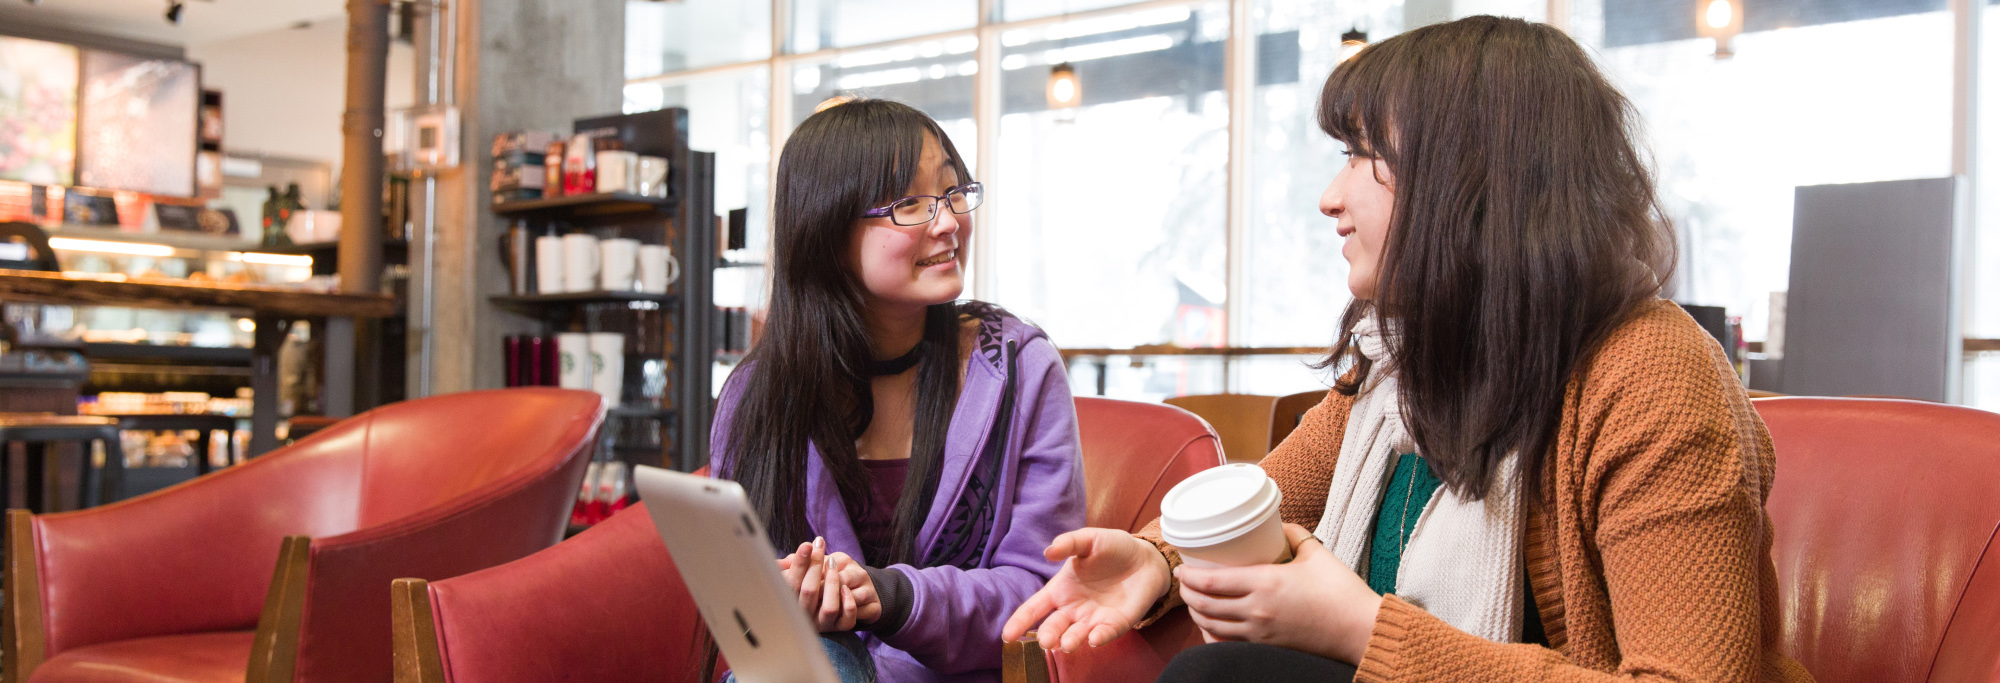 Two students discussing science mentorship program